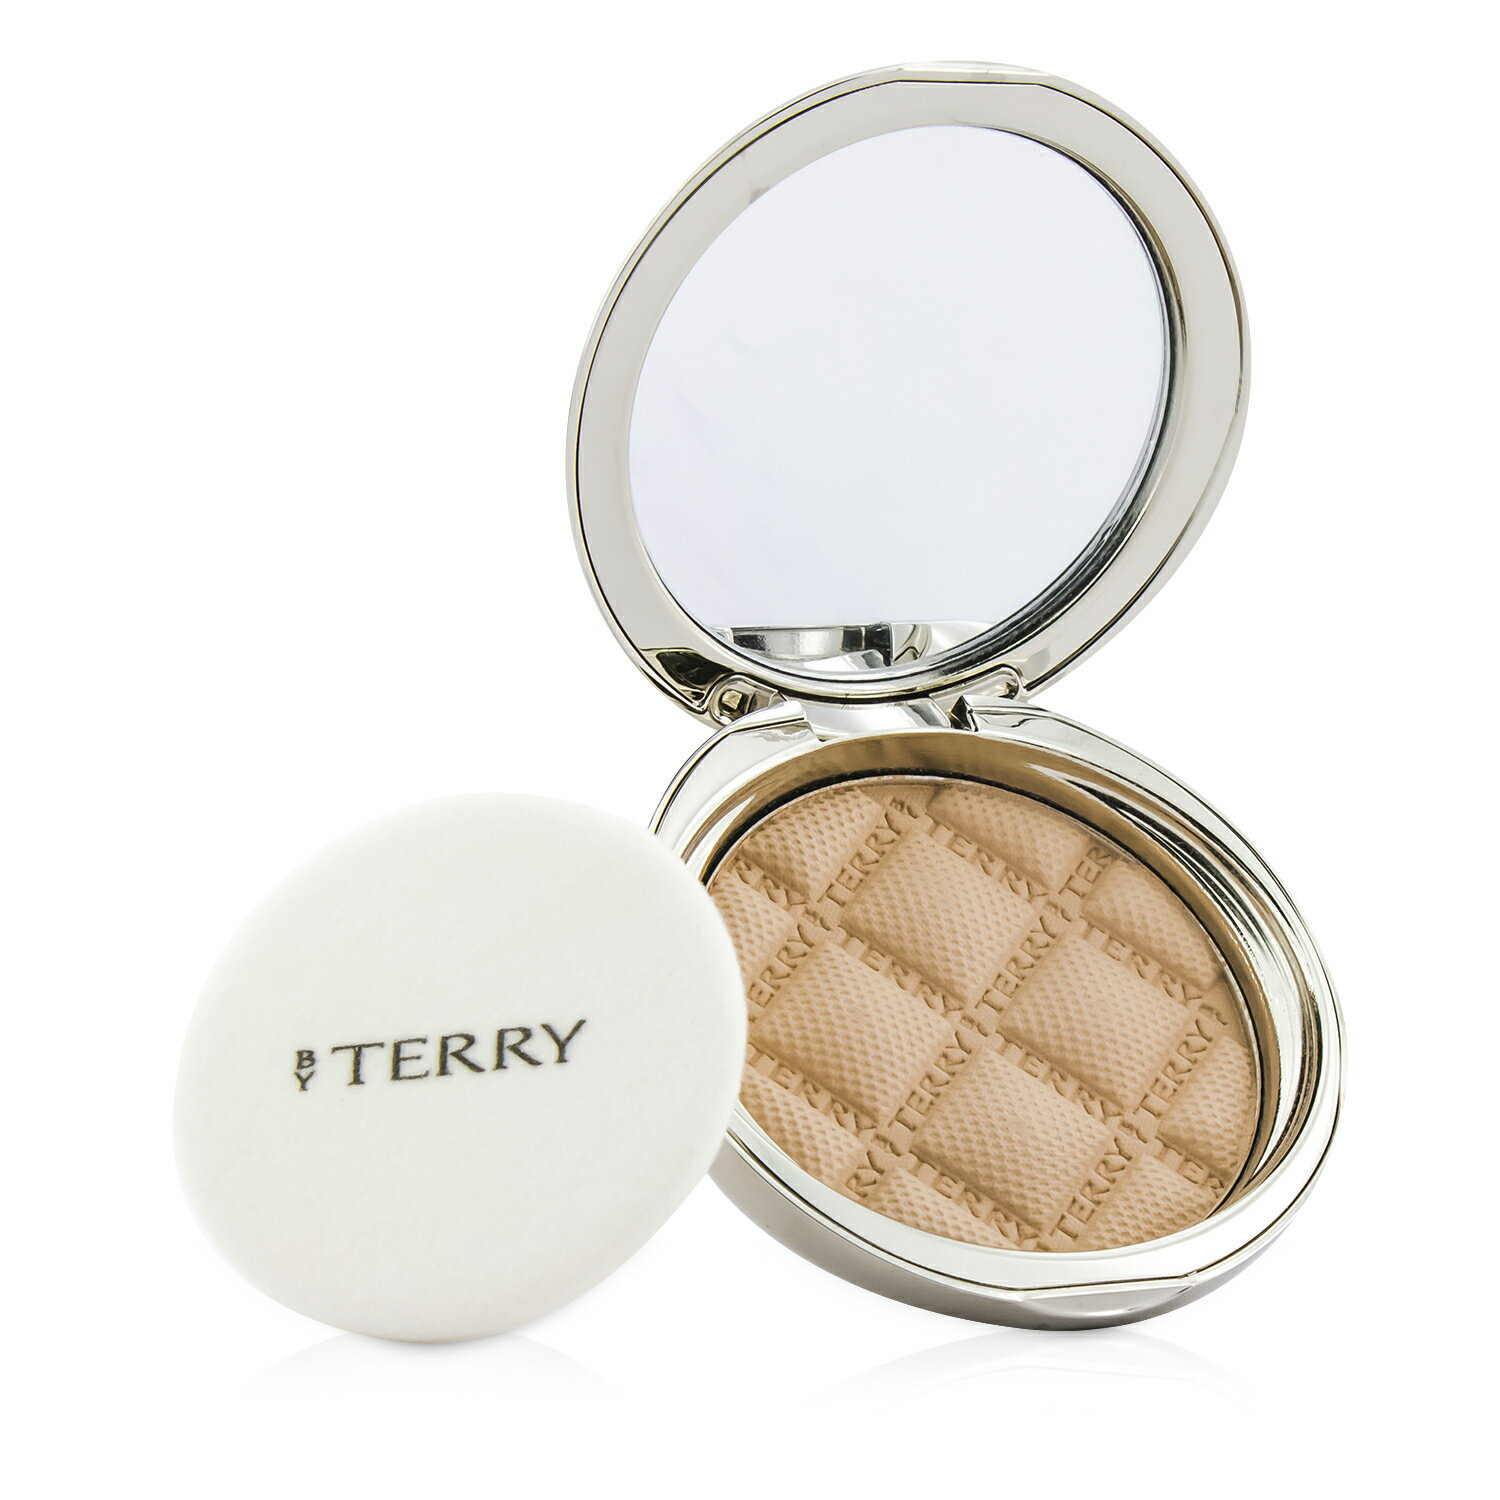 By Terry - 立體緊緻絲光粉餅(修飾抗皺) Terrybly Densiliss Compact (Wrinkle Control Pressed Powder)